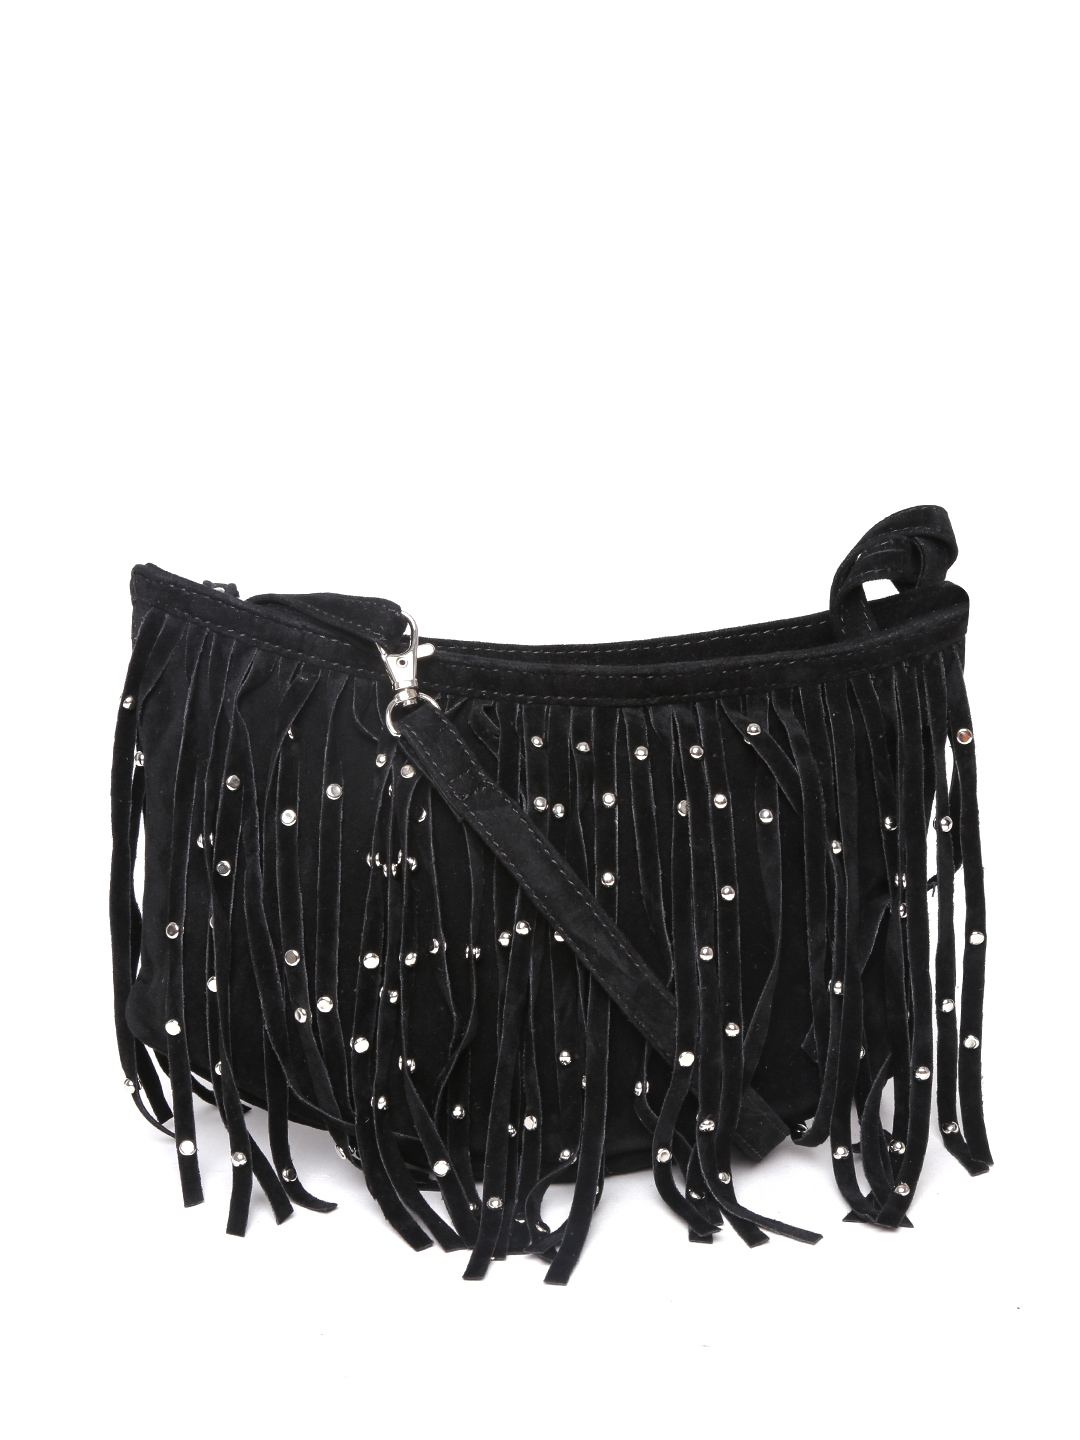 Fringe Bags - Buy Fringe Bags online in India